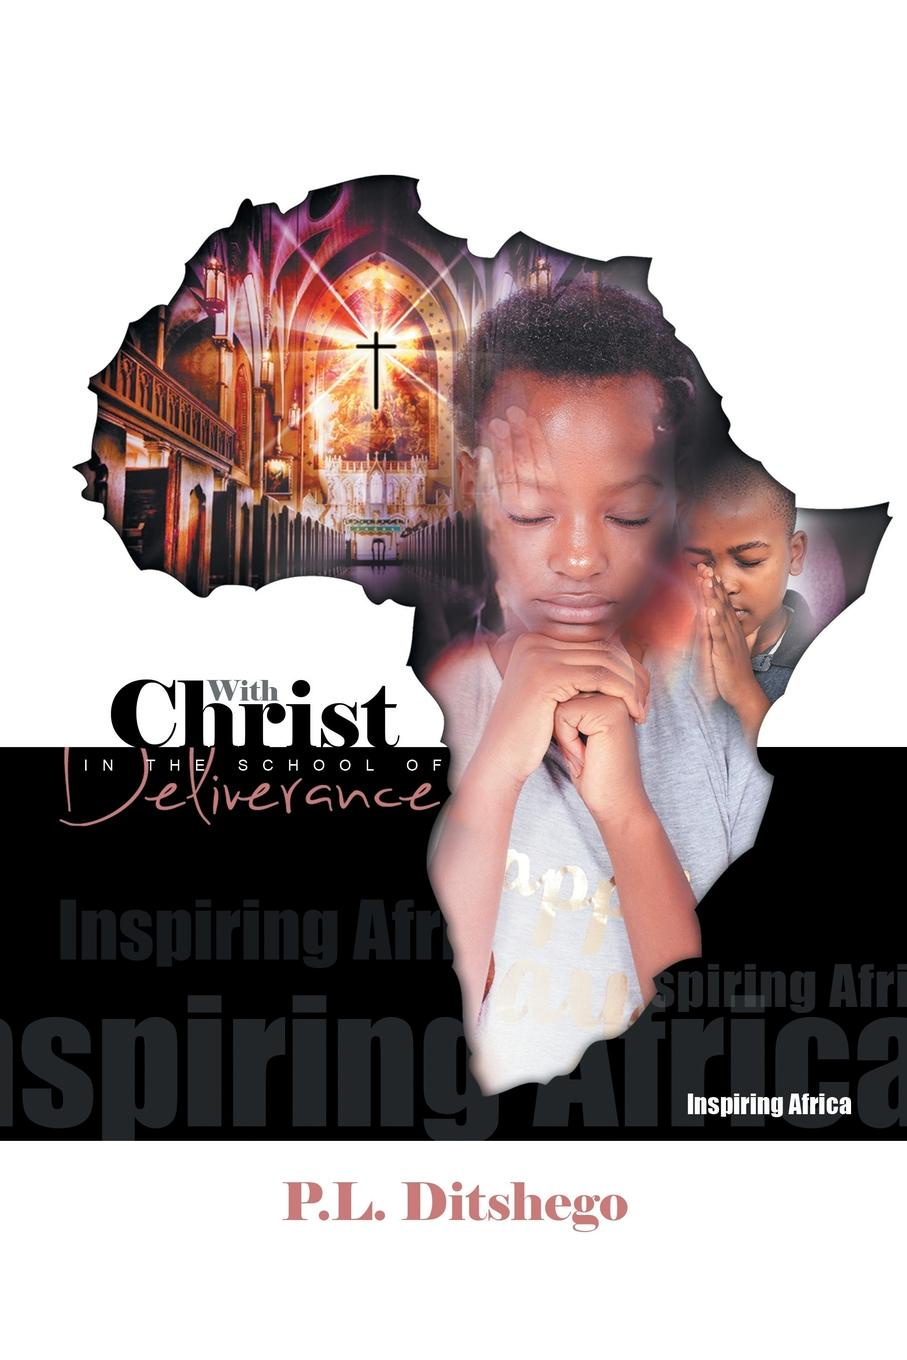 P. L. Ditshego With Christ in the School of Deliverance. Inspiring Africa